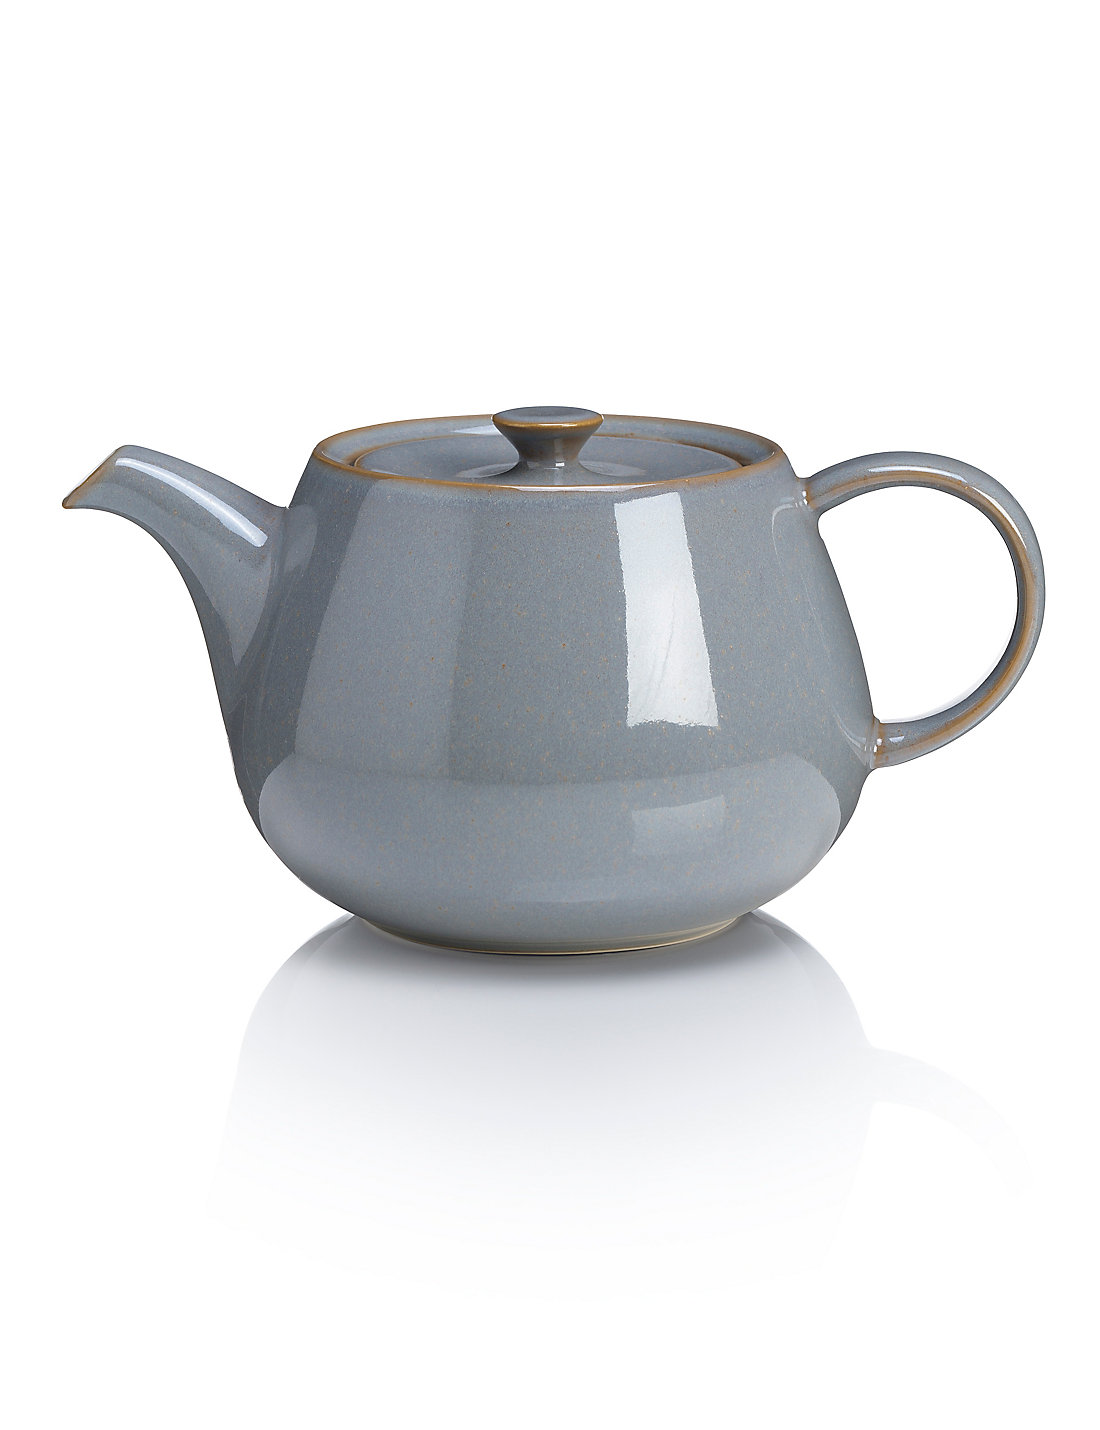 grey teapot m&s